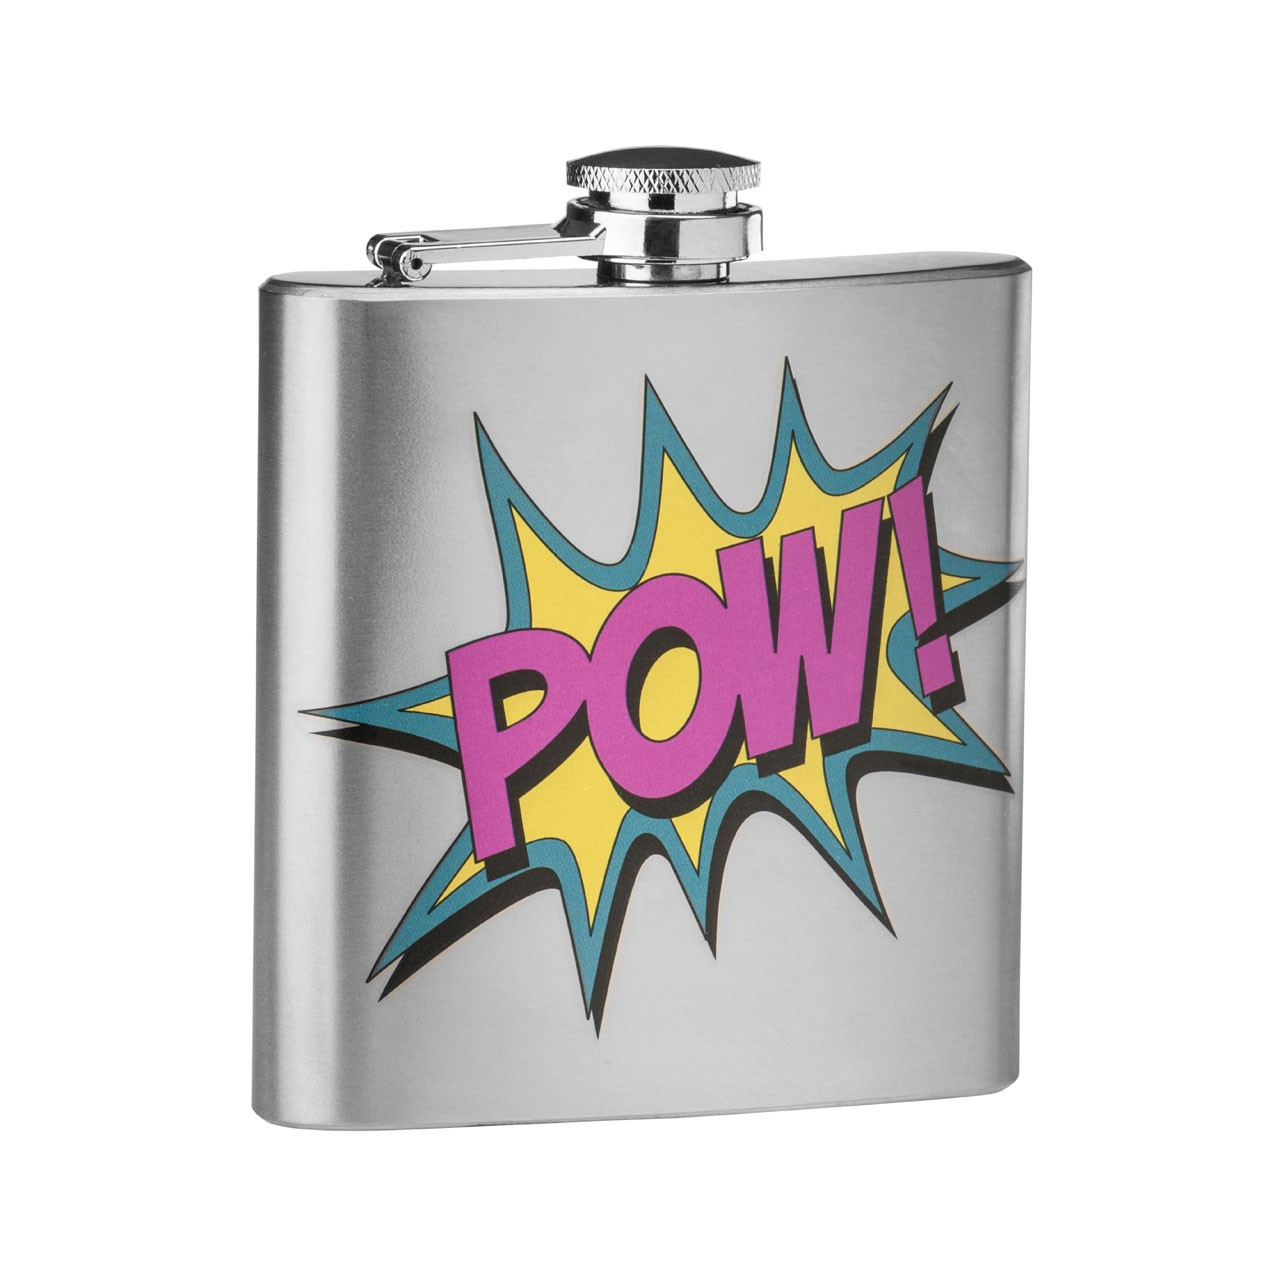 6 oz Stainless Steel Pow Design Hip Flask